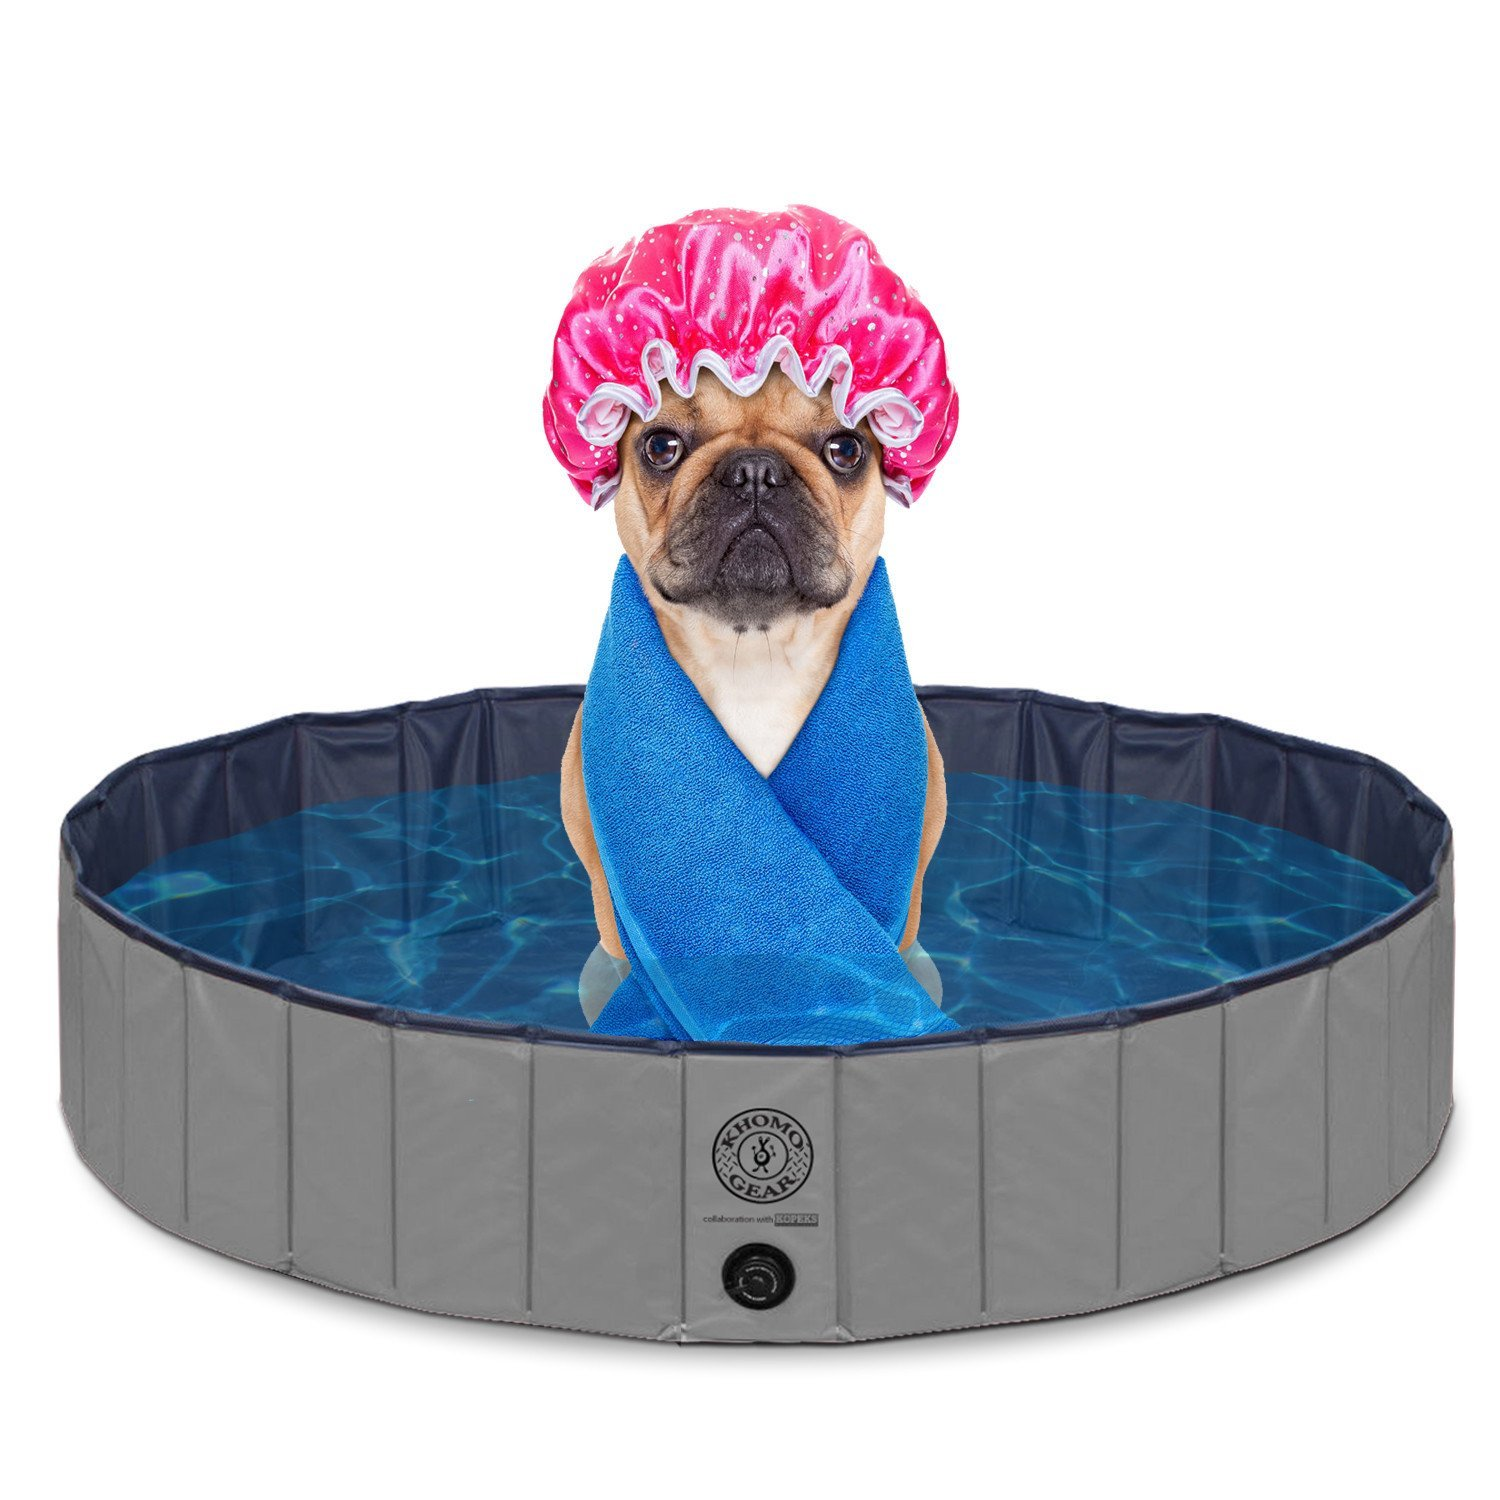 Outdoor Swimming Pool Bathing Tub - Portable Foldable - Ideal for Pets - Large 47'' x 12'' by KOPEKS